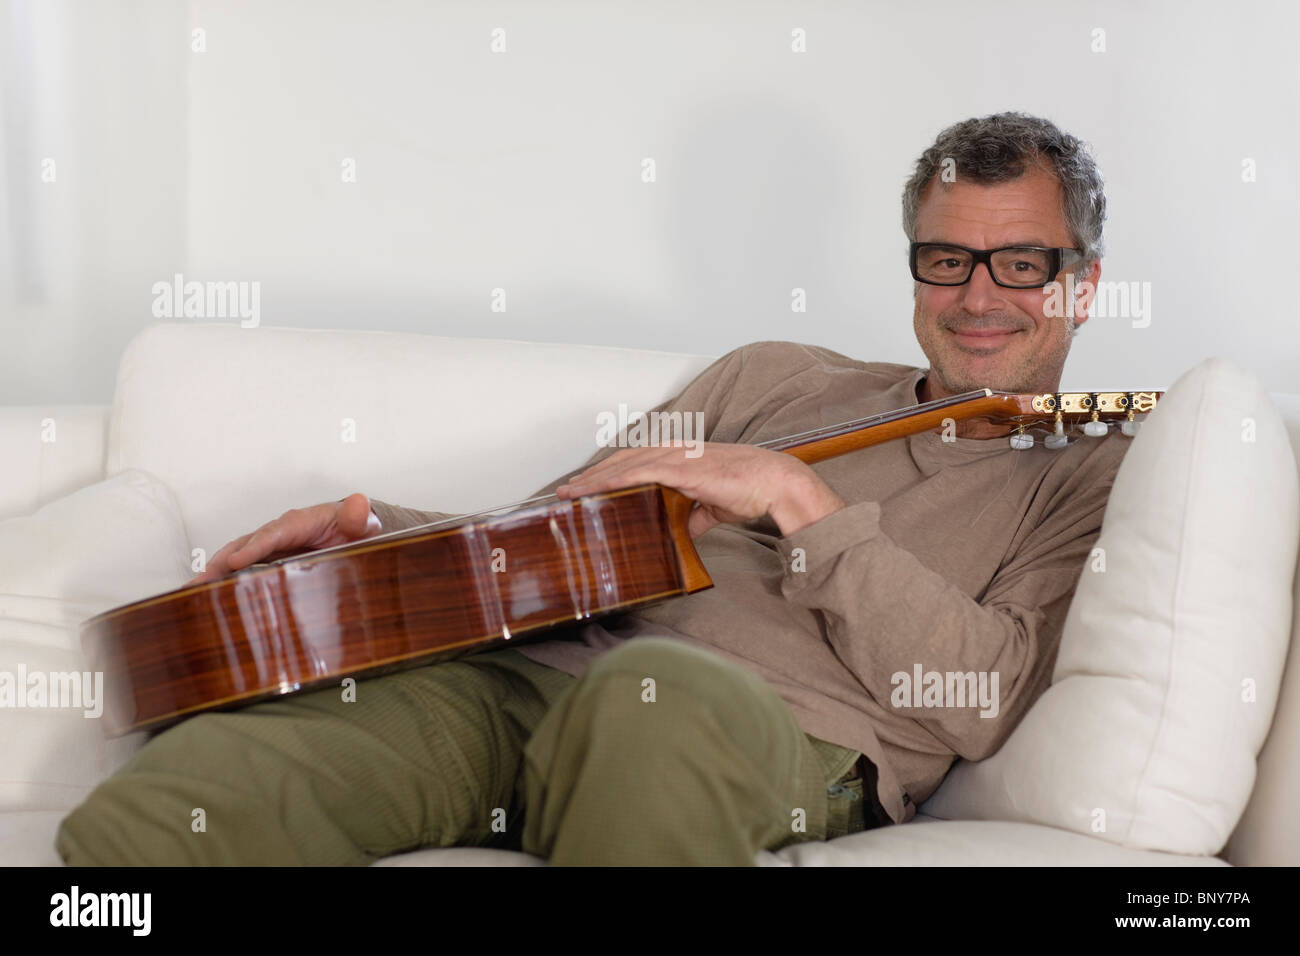 Man sitting with guitar - Stock Image